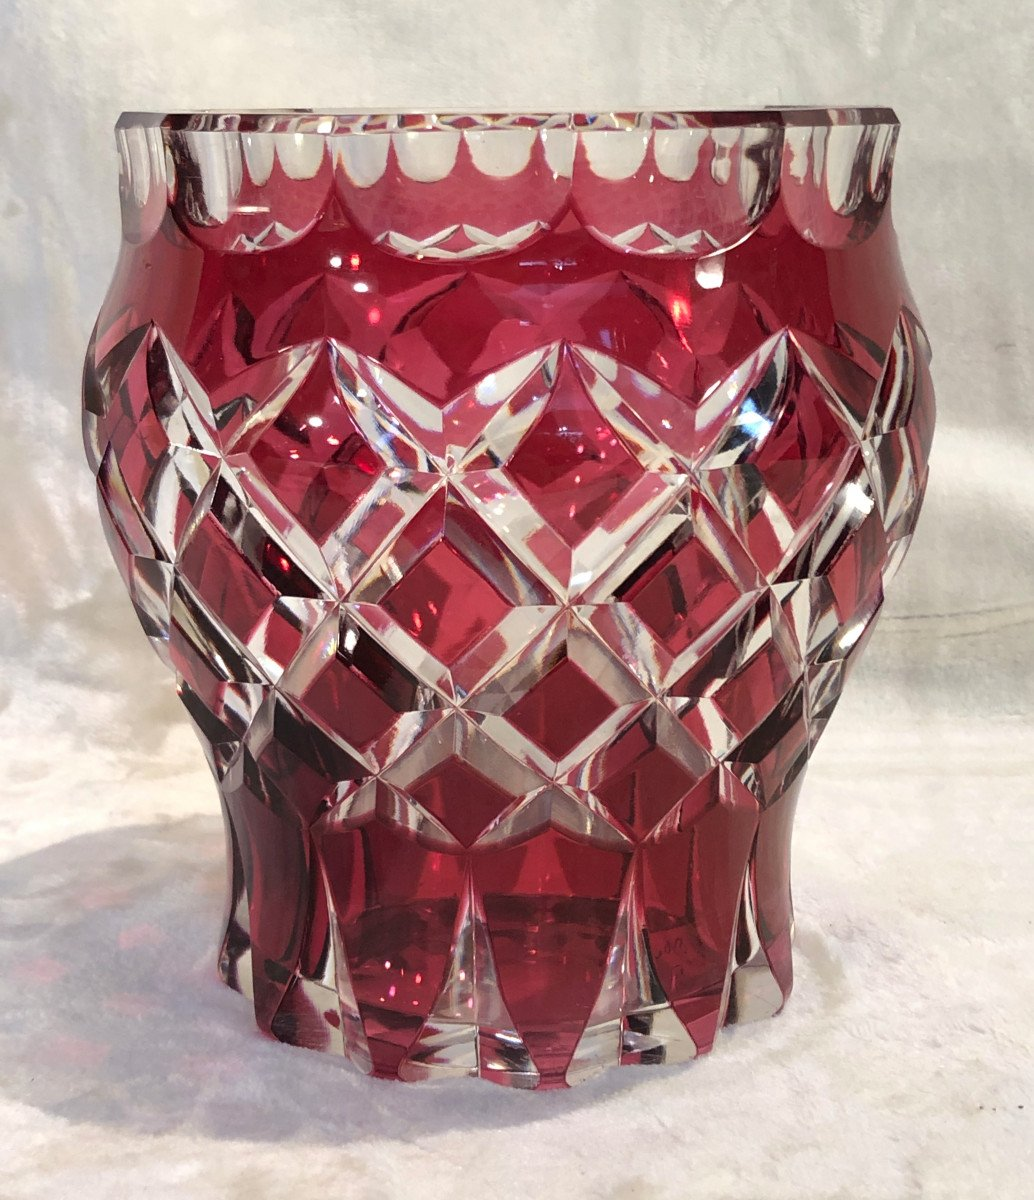 Crystal Vase - Val Saint Lambert - Red - Art-deco - 16 X 18cm